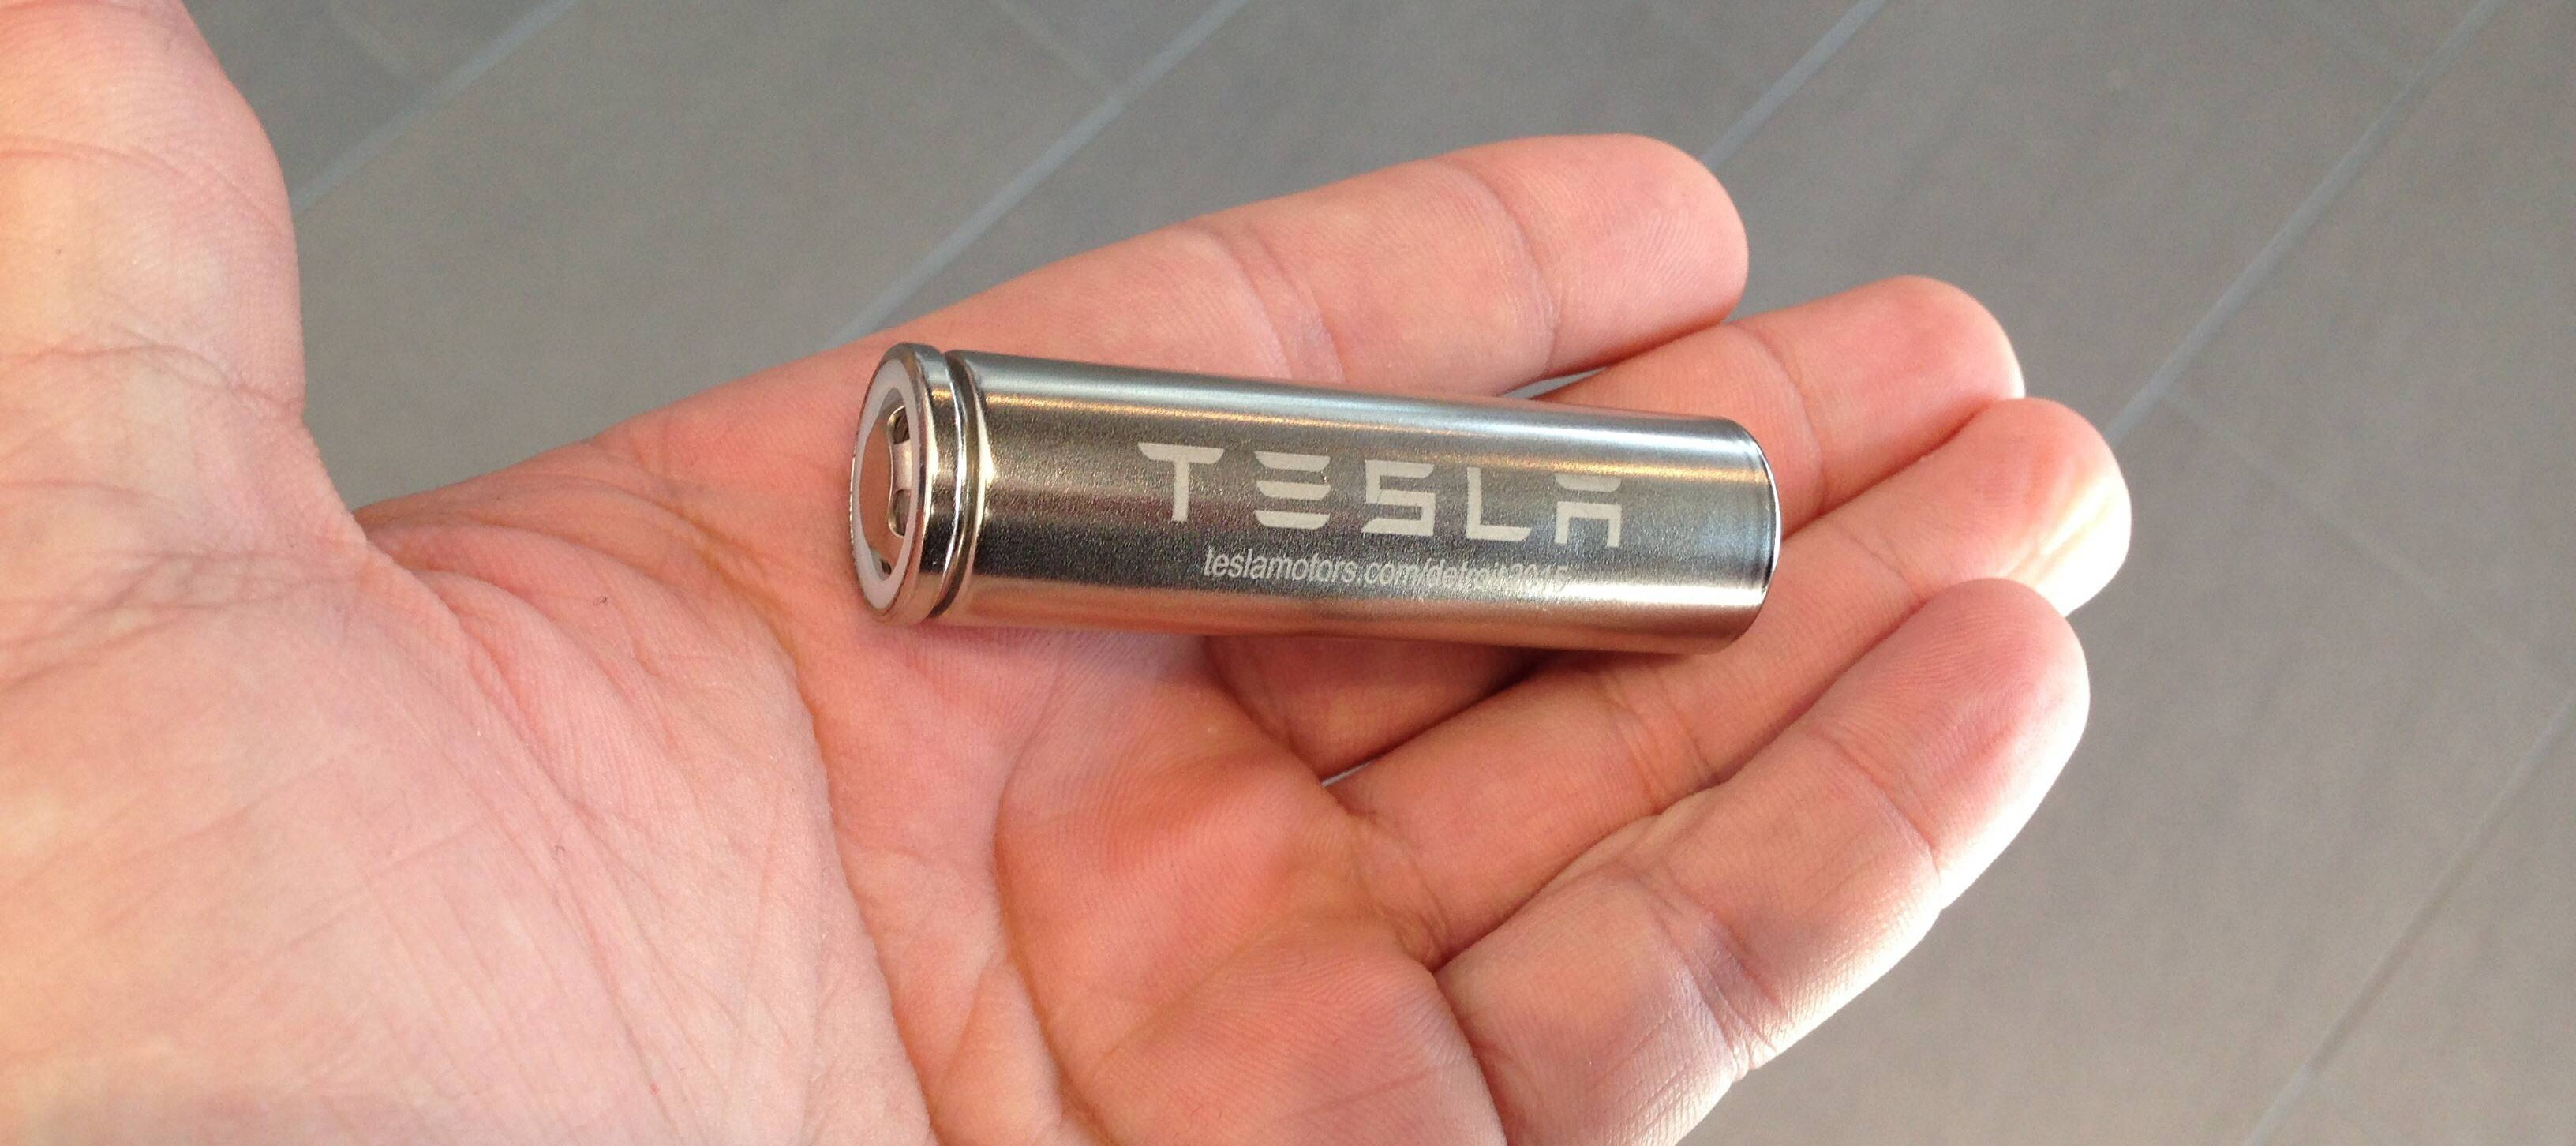 Tesla to approve first new battery supplier for vehicles since Panasonic, report says